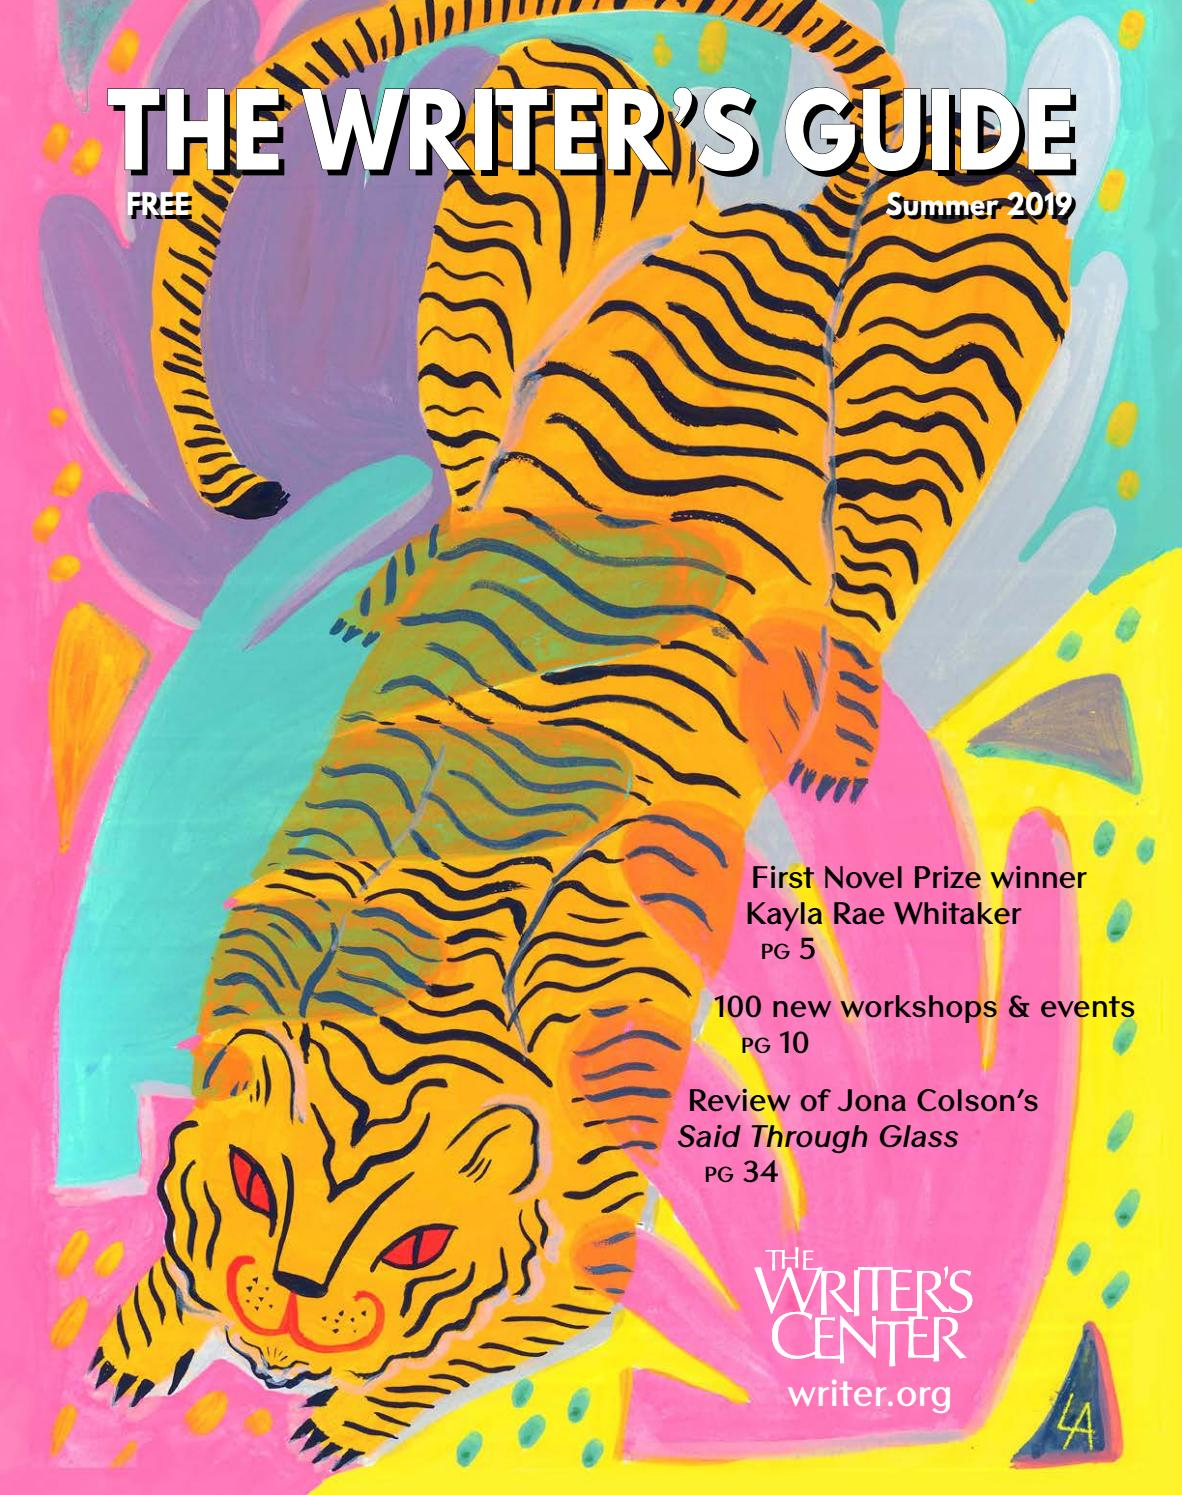 The Writer's Guide - Summer 2019 by The Writer's Center - issuu